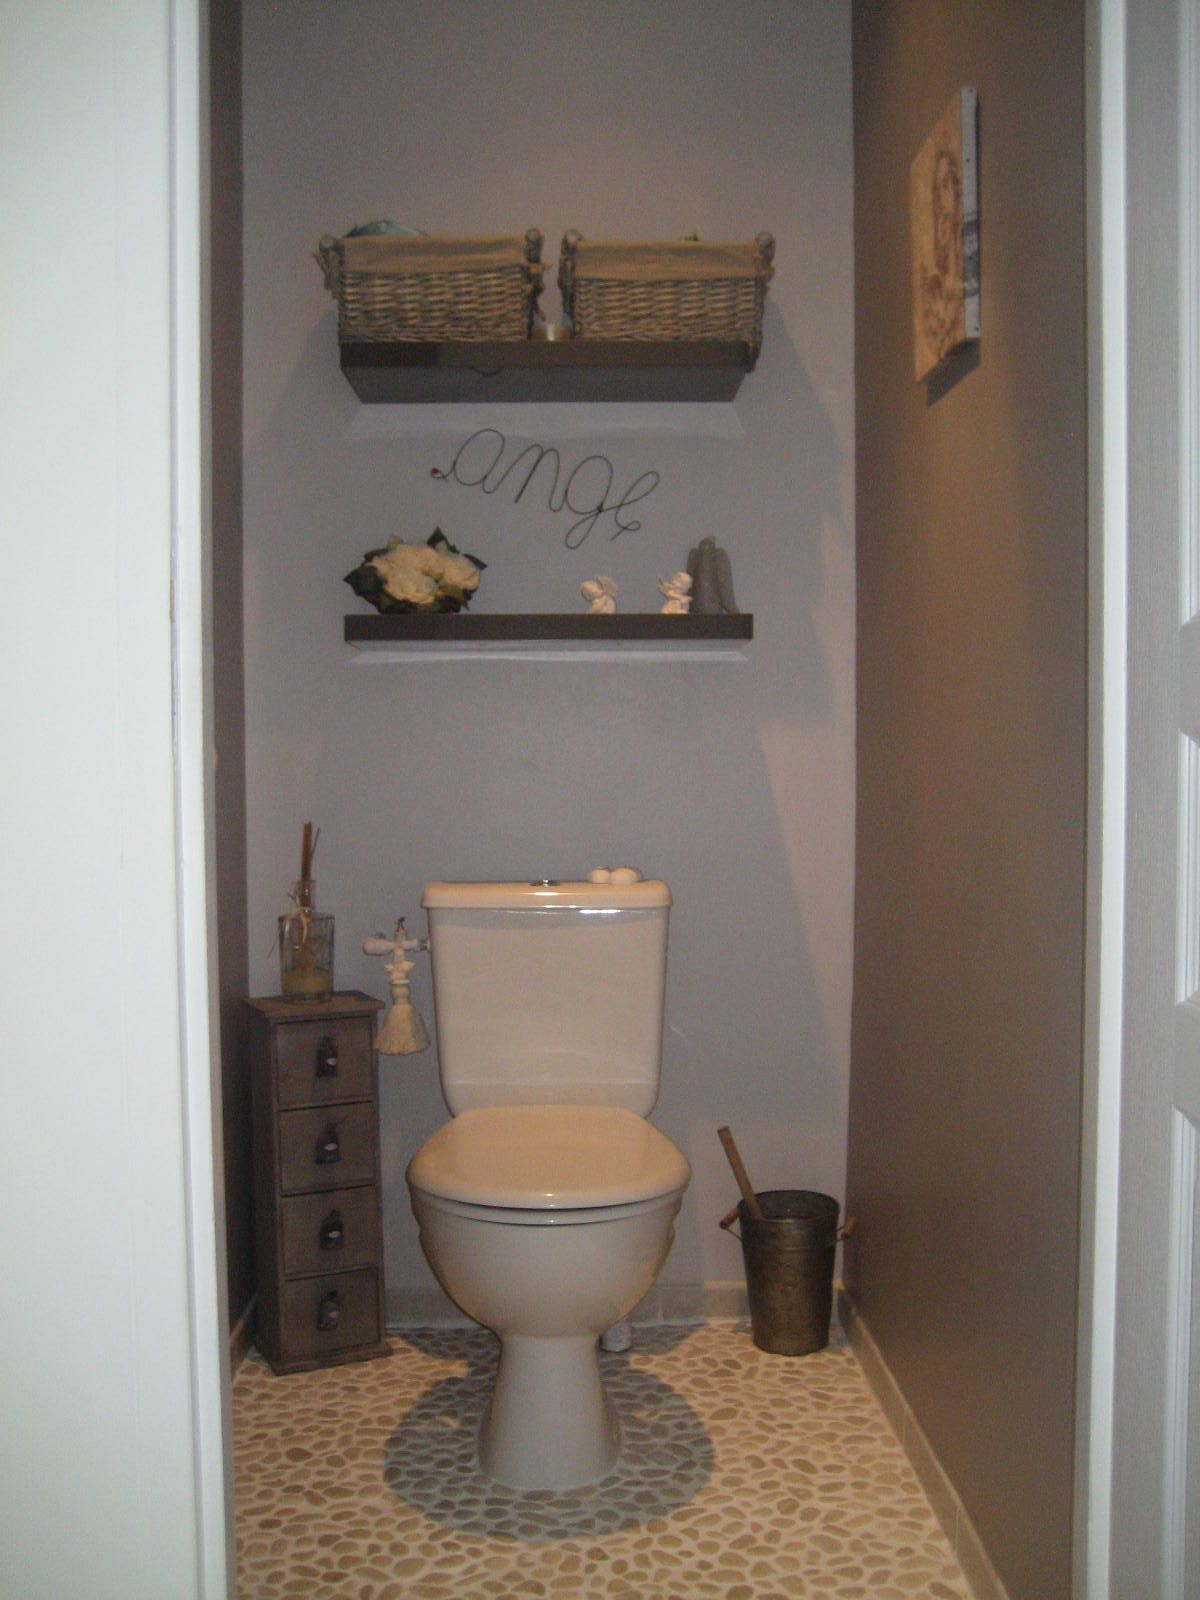 Toilette deco google search nouvelle maison for Toilette seche interieur maison